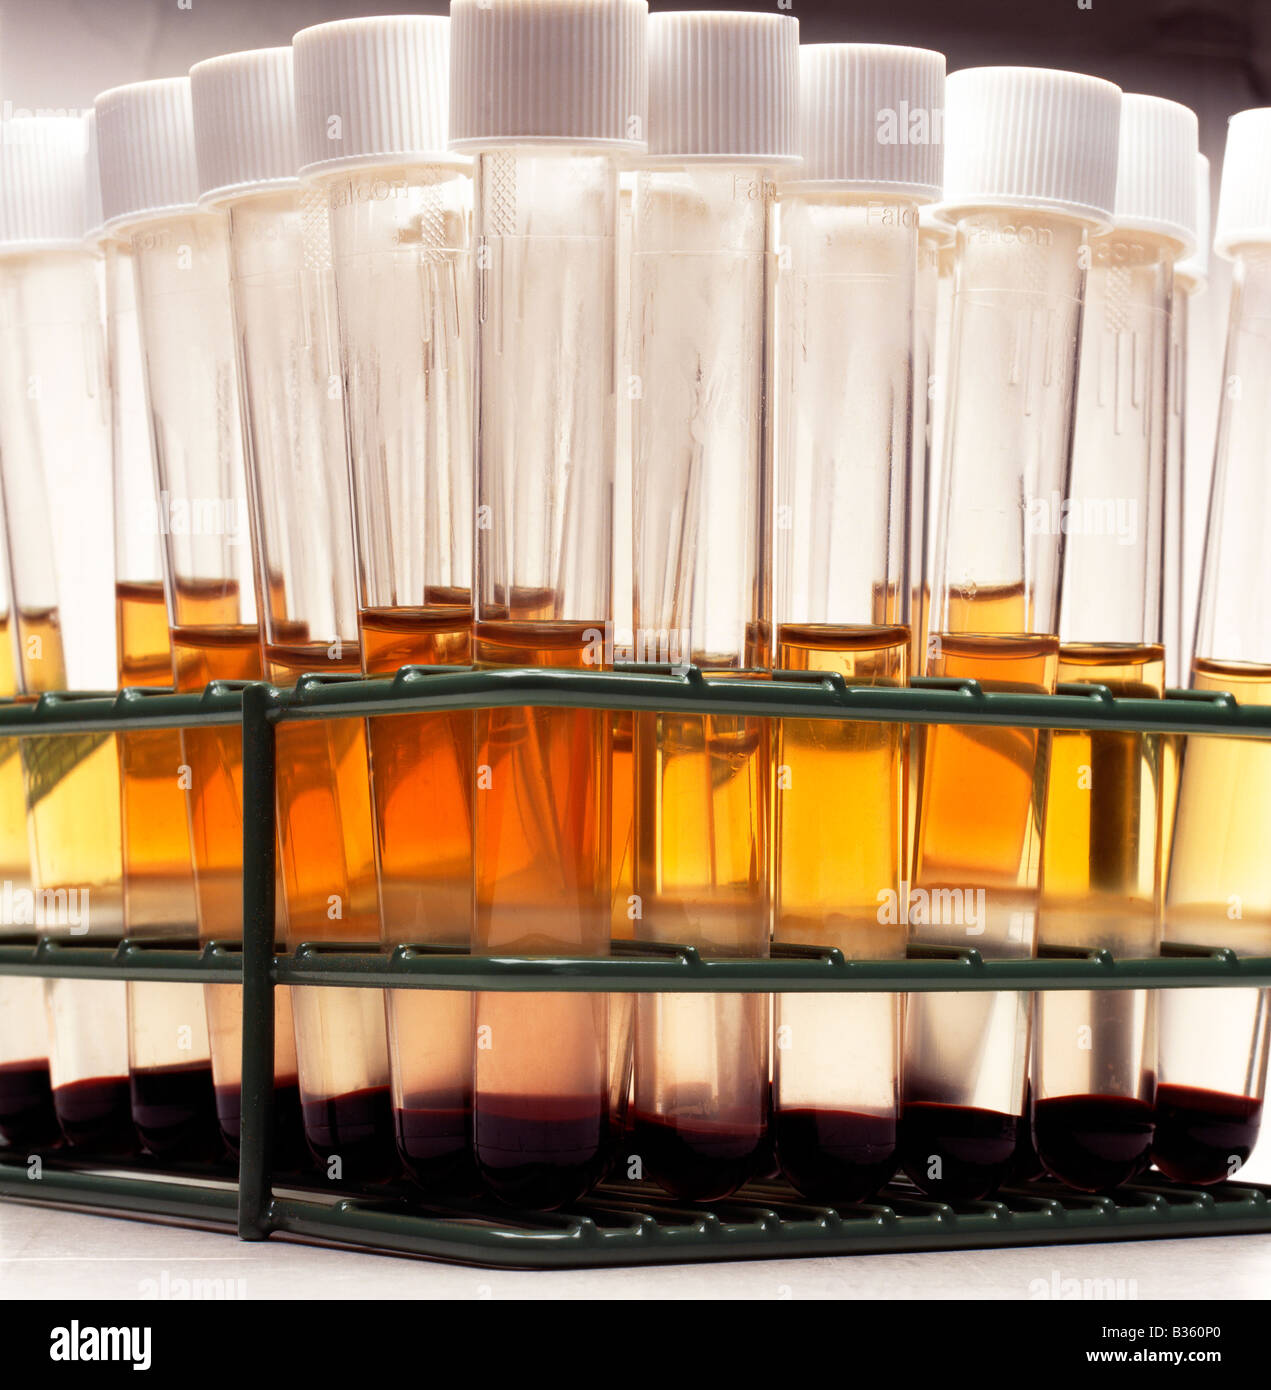 TEST TUBES OF HUMAN CELLS IN A LABORATORY AT A BIOMEDICAL RESEARCH FACILITY - Stock Image